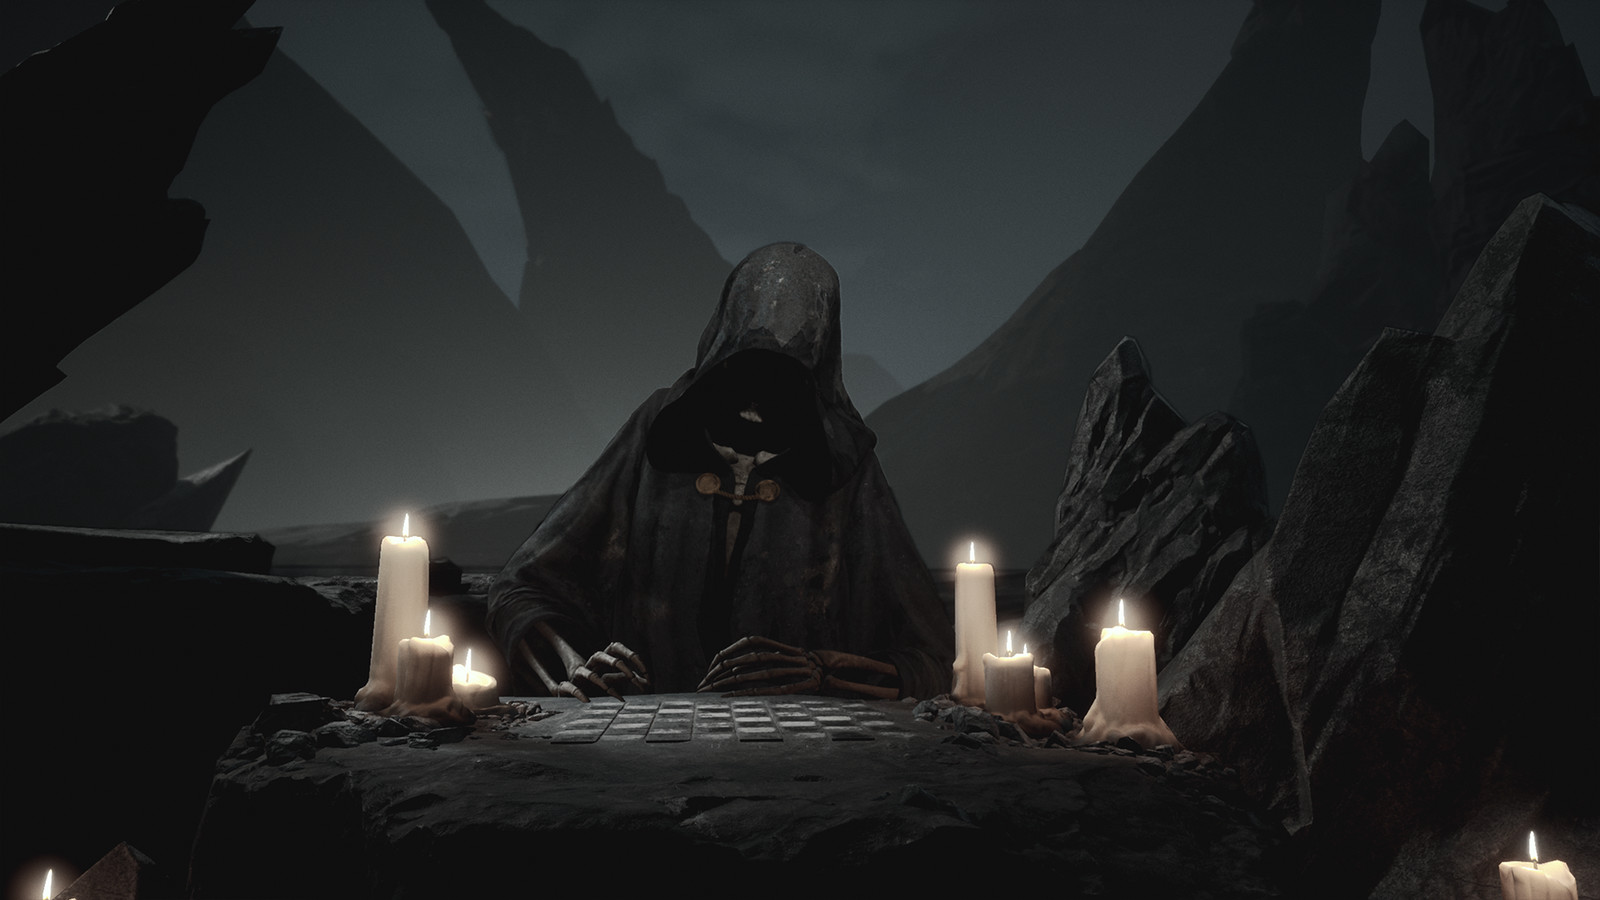 """""""Gomorrah""""  Concept and Reaper Art direction - Modelling --Texturing - Lighting - VFX - Optimization   The concept for this scene was created by """"David Cottrell-Jones""""   The model and animations for the grim reaper were outsourced to """"The Post House"""""""